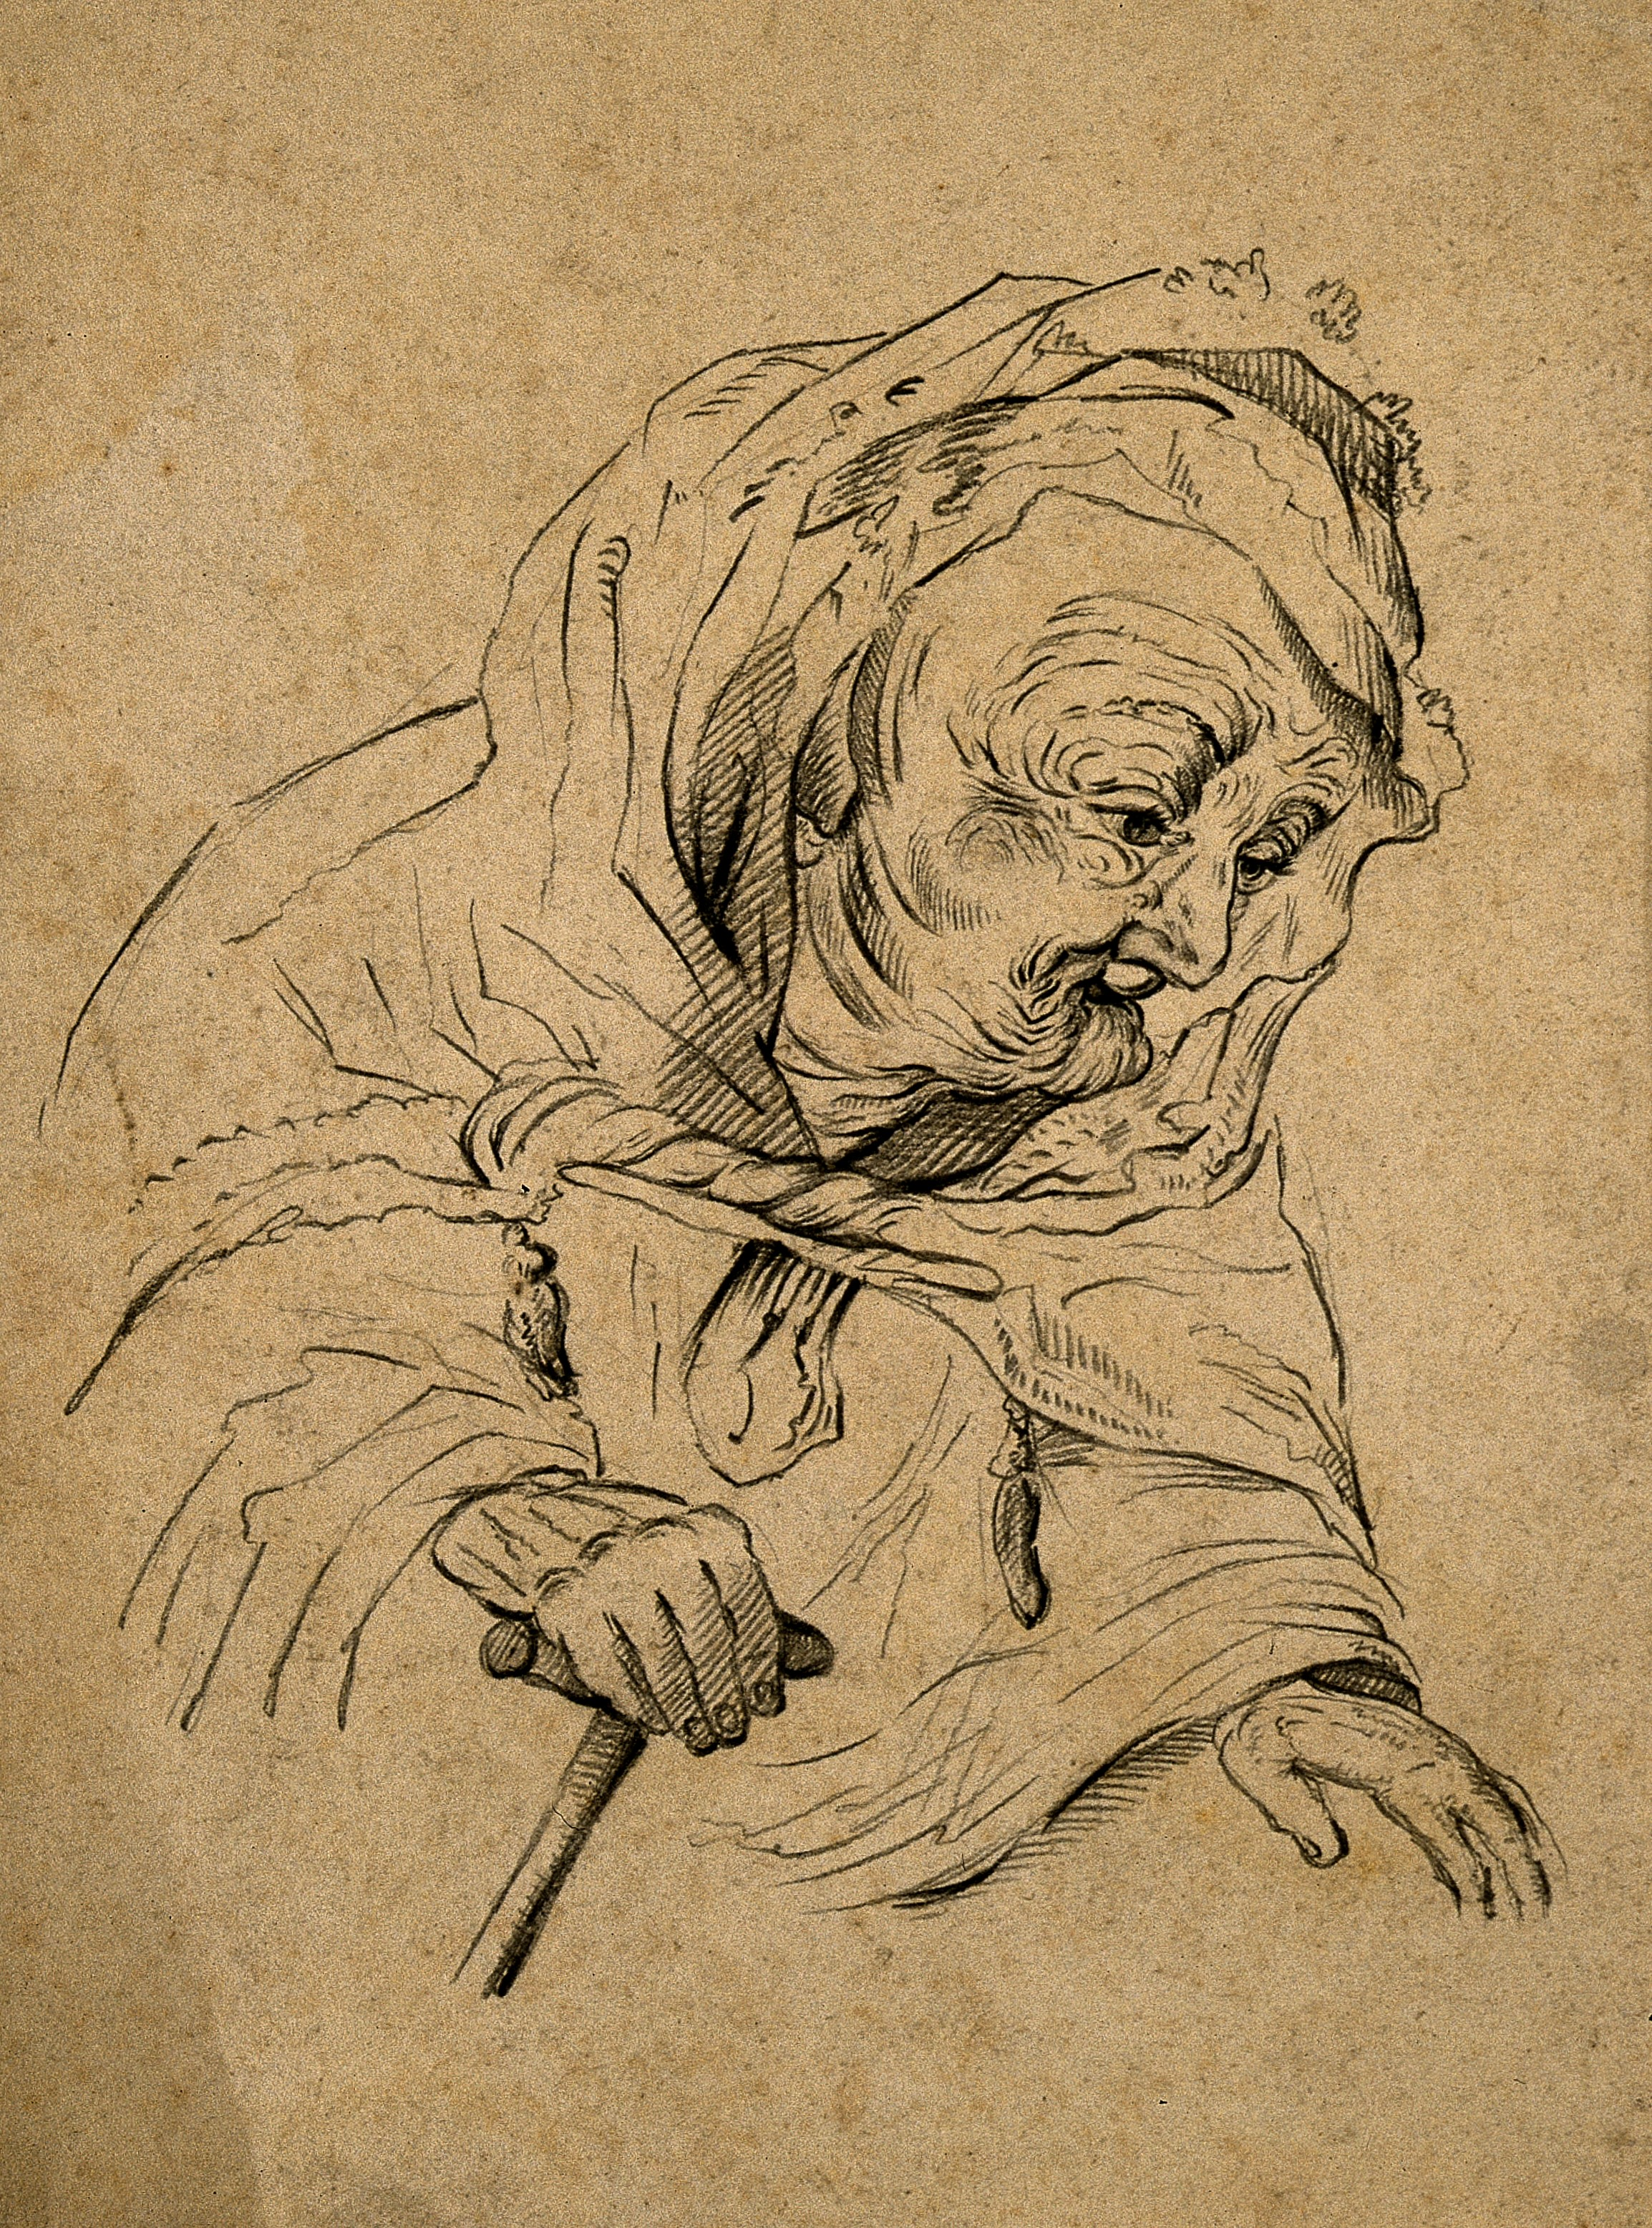 V0007469 A very old woman. Pencil drawing after Rembrandt. Credit: Wellcome Library, London. Wellcome Images images@wellcome.ac.uk http://wellcomeimages.org A very old woman. Pencil drawing after Rembrandt. By: Rembrandt Harmenszoon van RijnPublished:  -   Copyrighted work available under Creative Commons Attribution only licence CC BY 4.0 http://creativecommons.org/licenses/by/4.0/